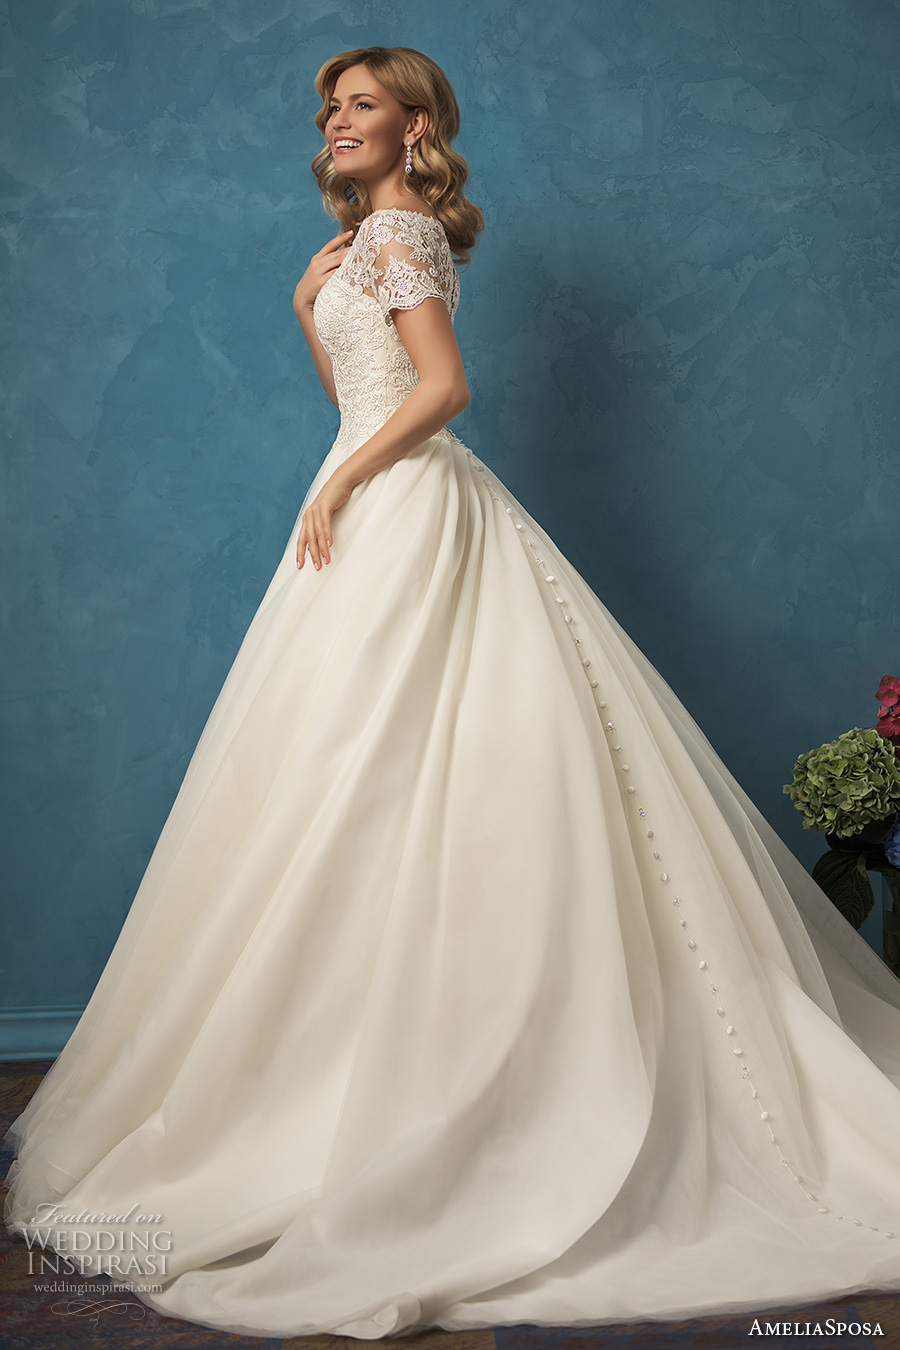 Ball Gown Wedding Dresses With Short Sleeves : Amelia sposa wedding dresses inspirasi